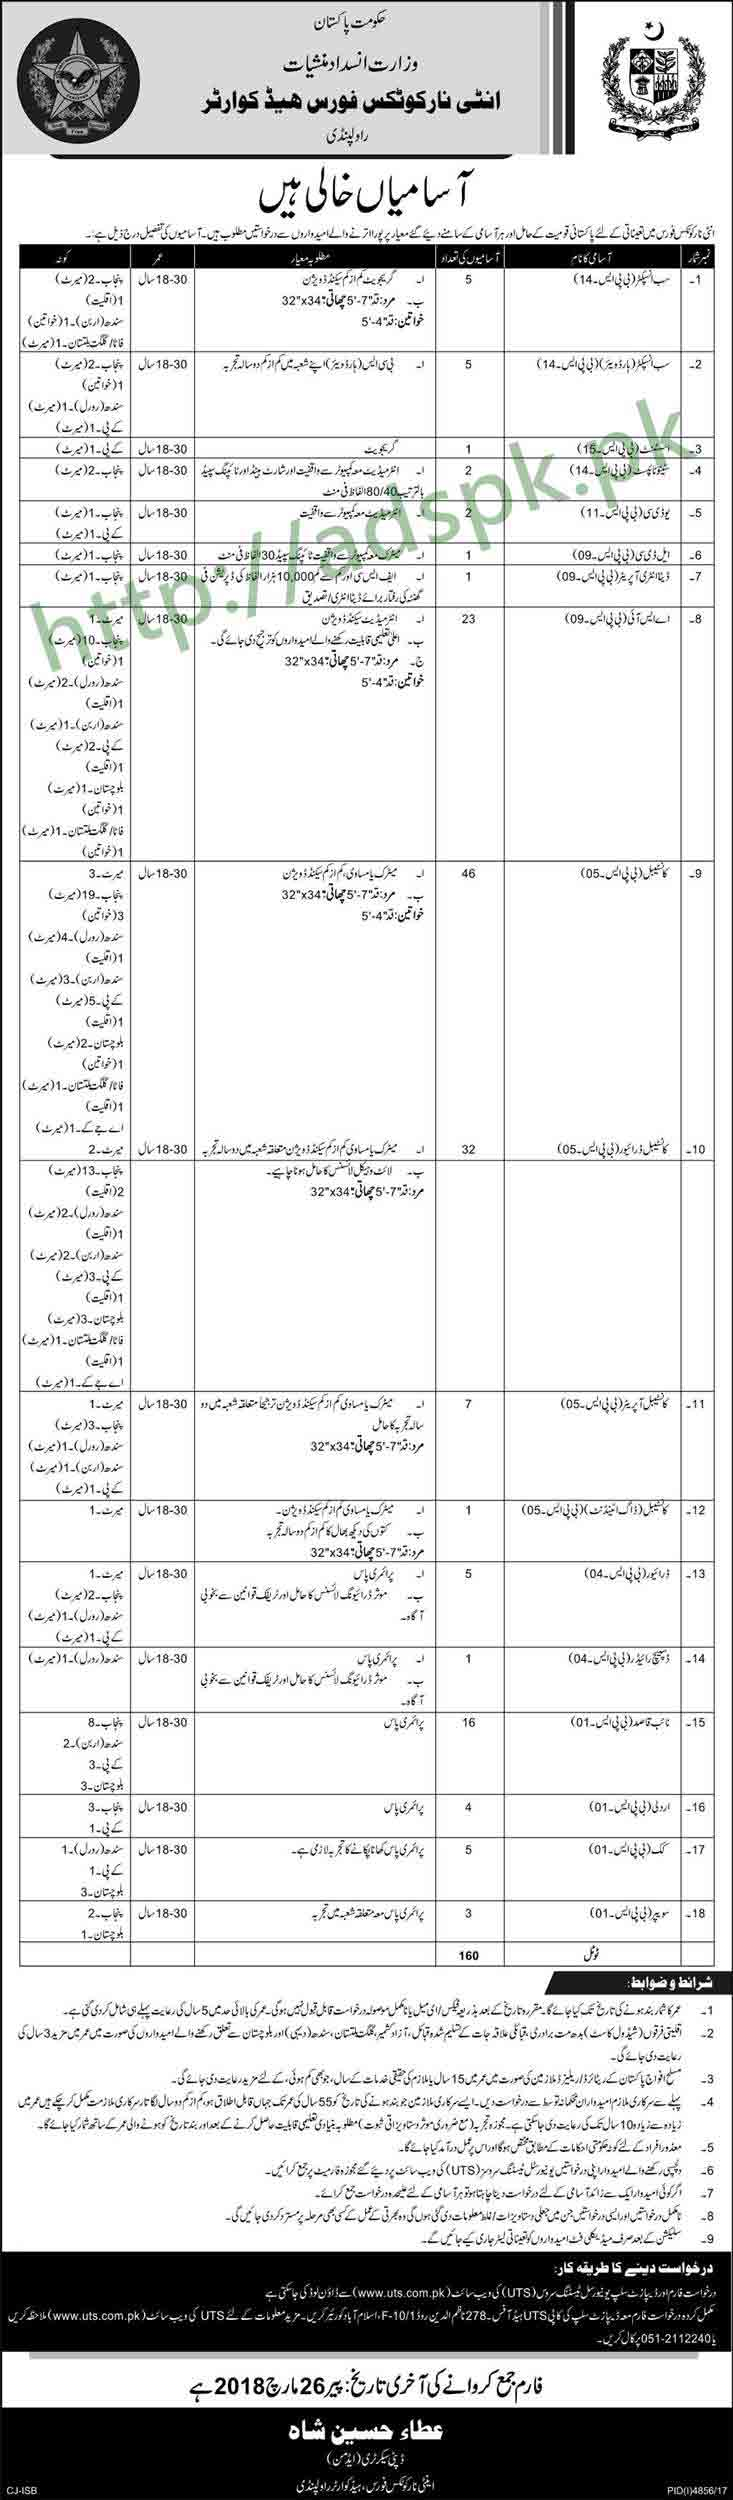 Anti-Narcotics Force ANF HQ Rawalpindi Jobs 2018 UTS Written Test MCQs Syllabus Paper Sub Inspector ASI Data Entry Operator Constable Driver Constable Naib Qasid 160 Posts Jobs Application Form Deadline 26-03-2018 Apply Now by Universal Testing Services